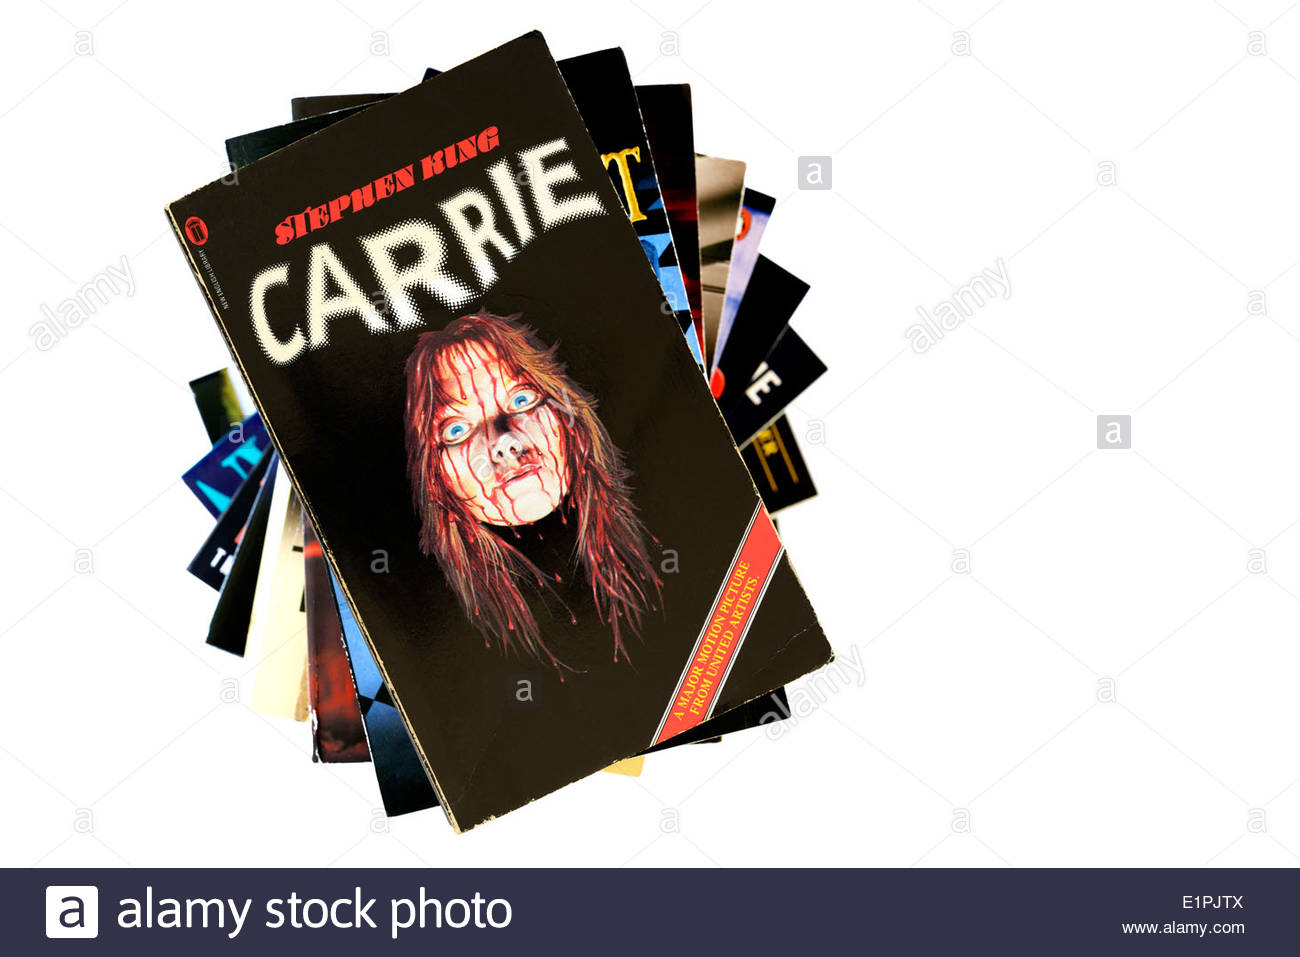 Stephen King paperback Carrie stacked used books, England - Stock Image